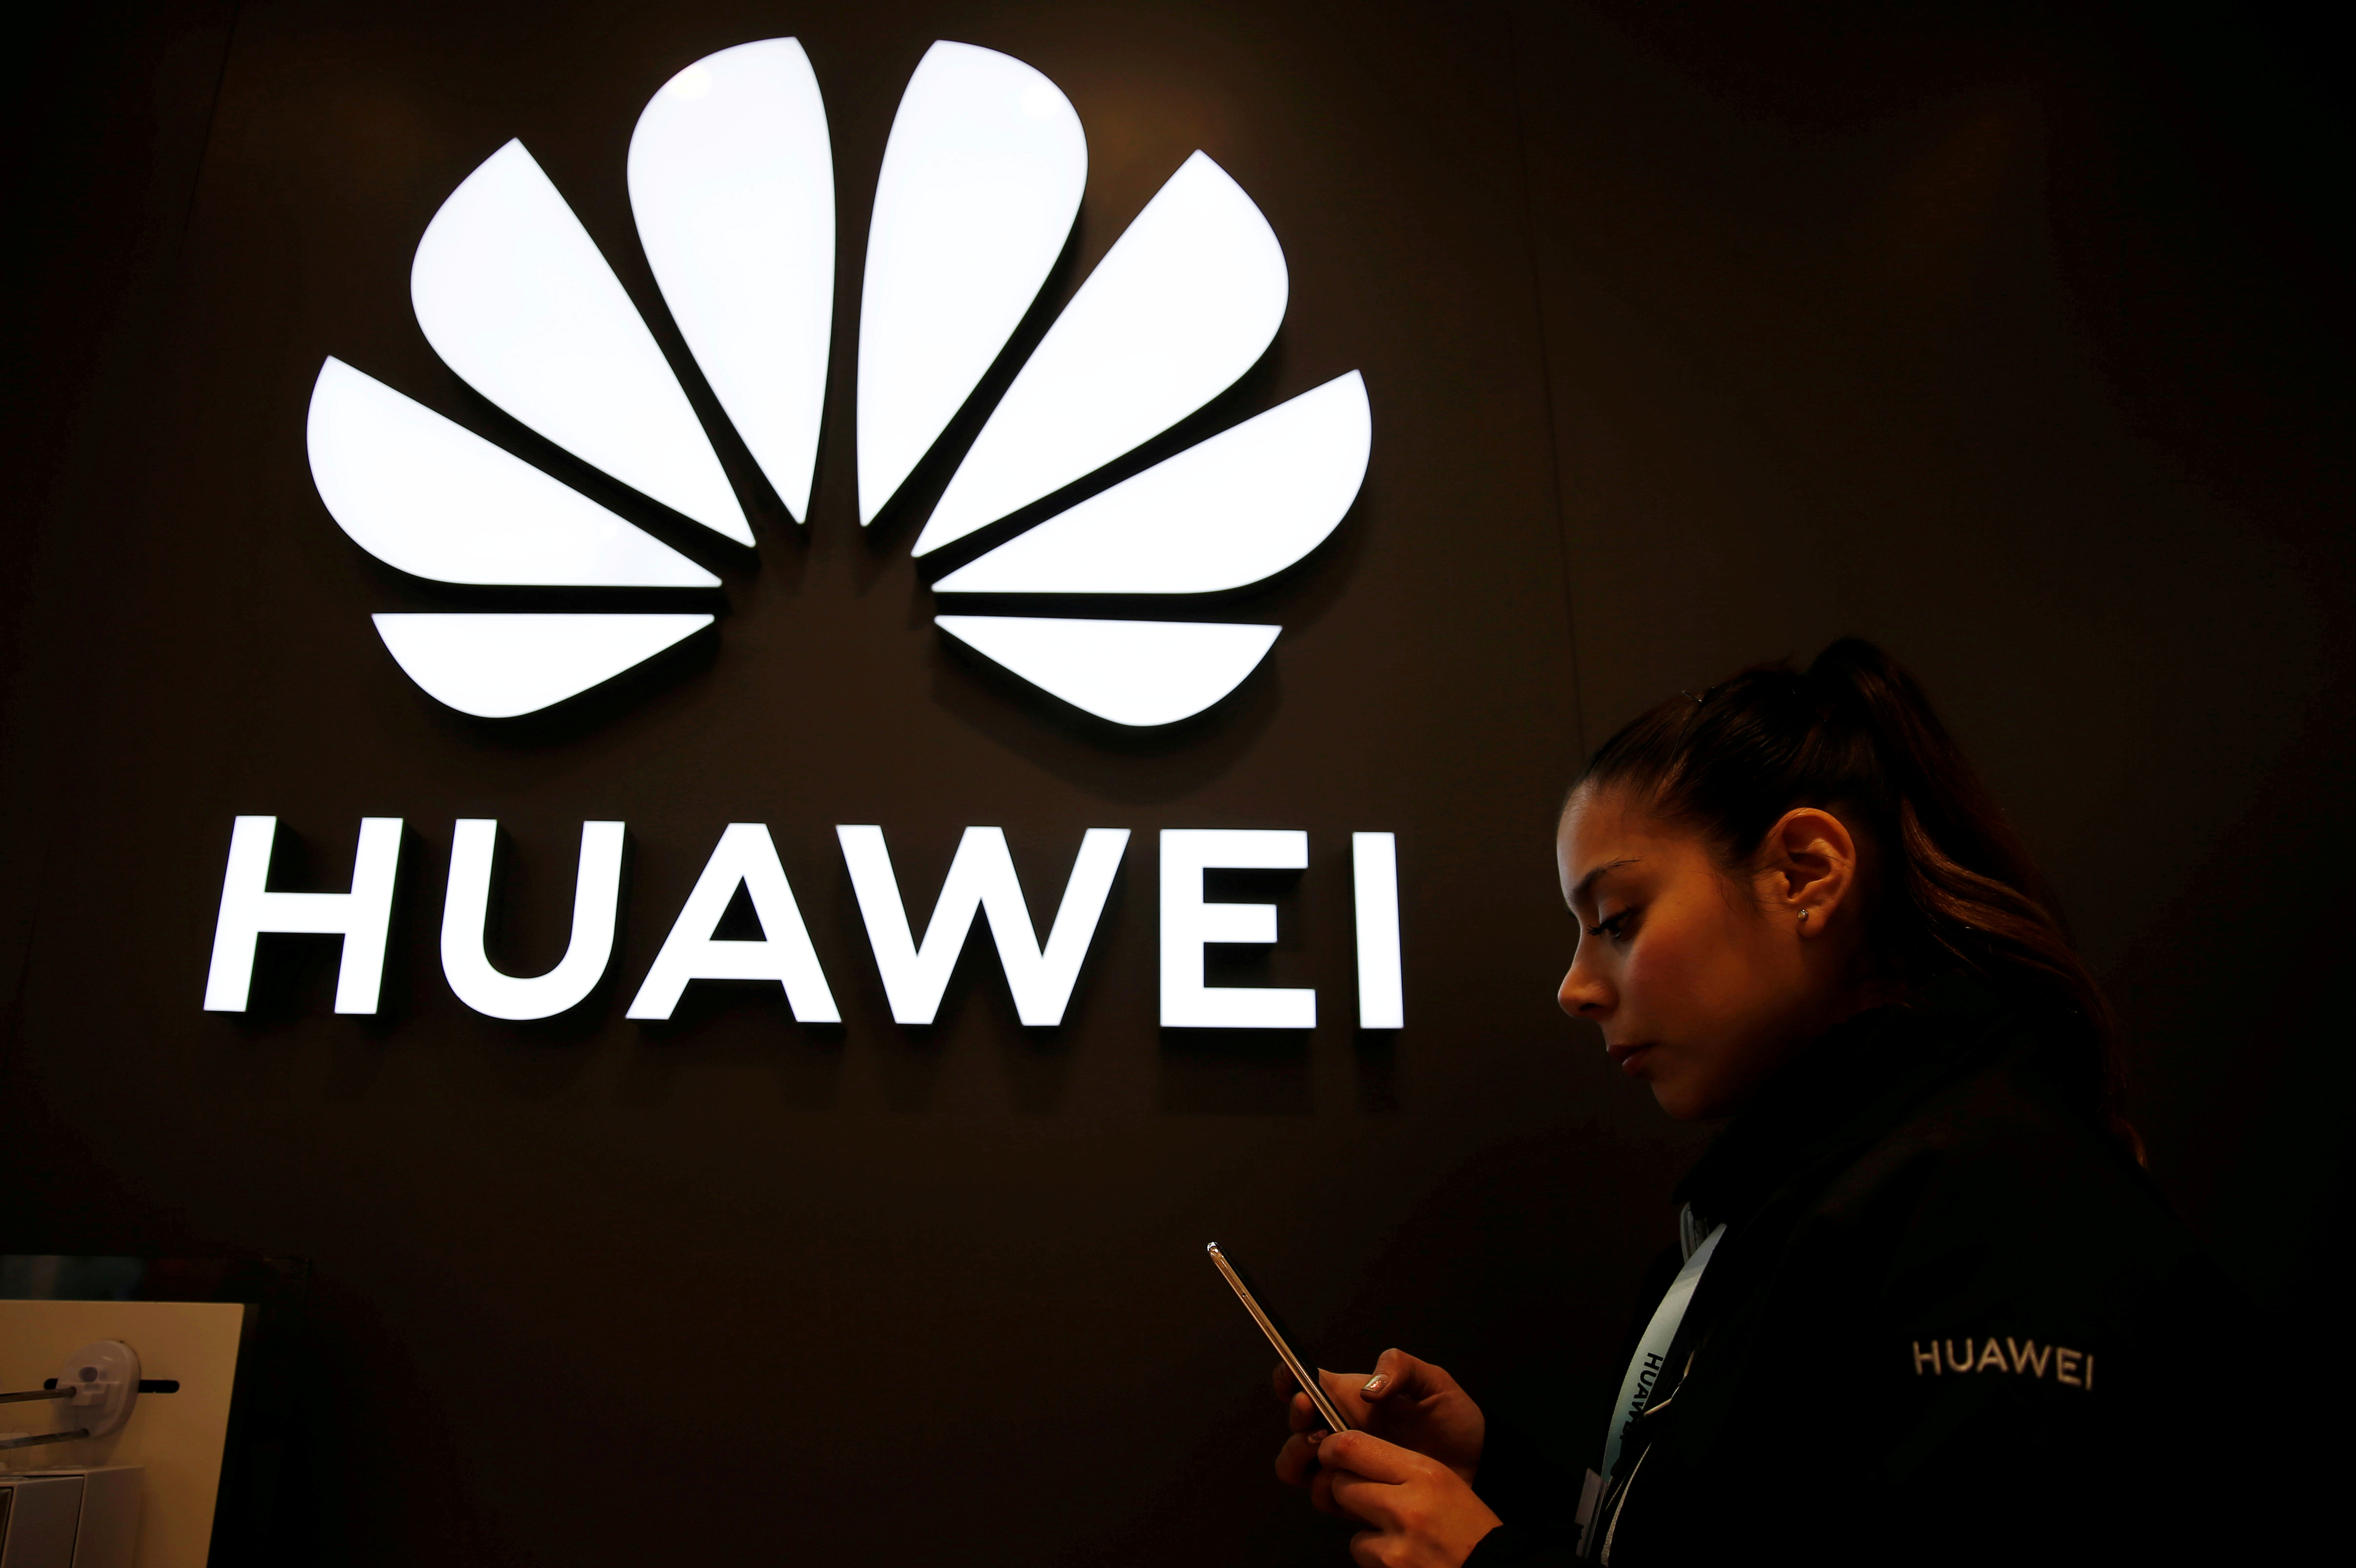 China Warns India of 'Reverse Sanctions' If Huawei Is Blocked, Sources Say